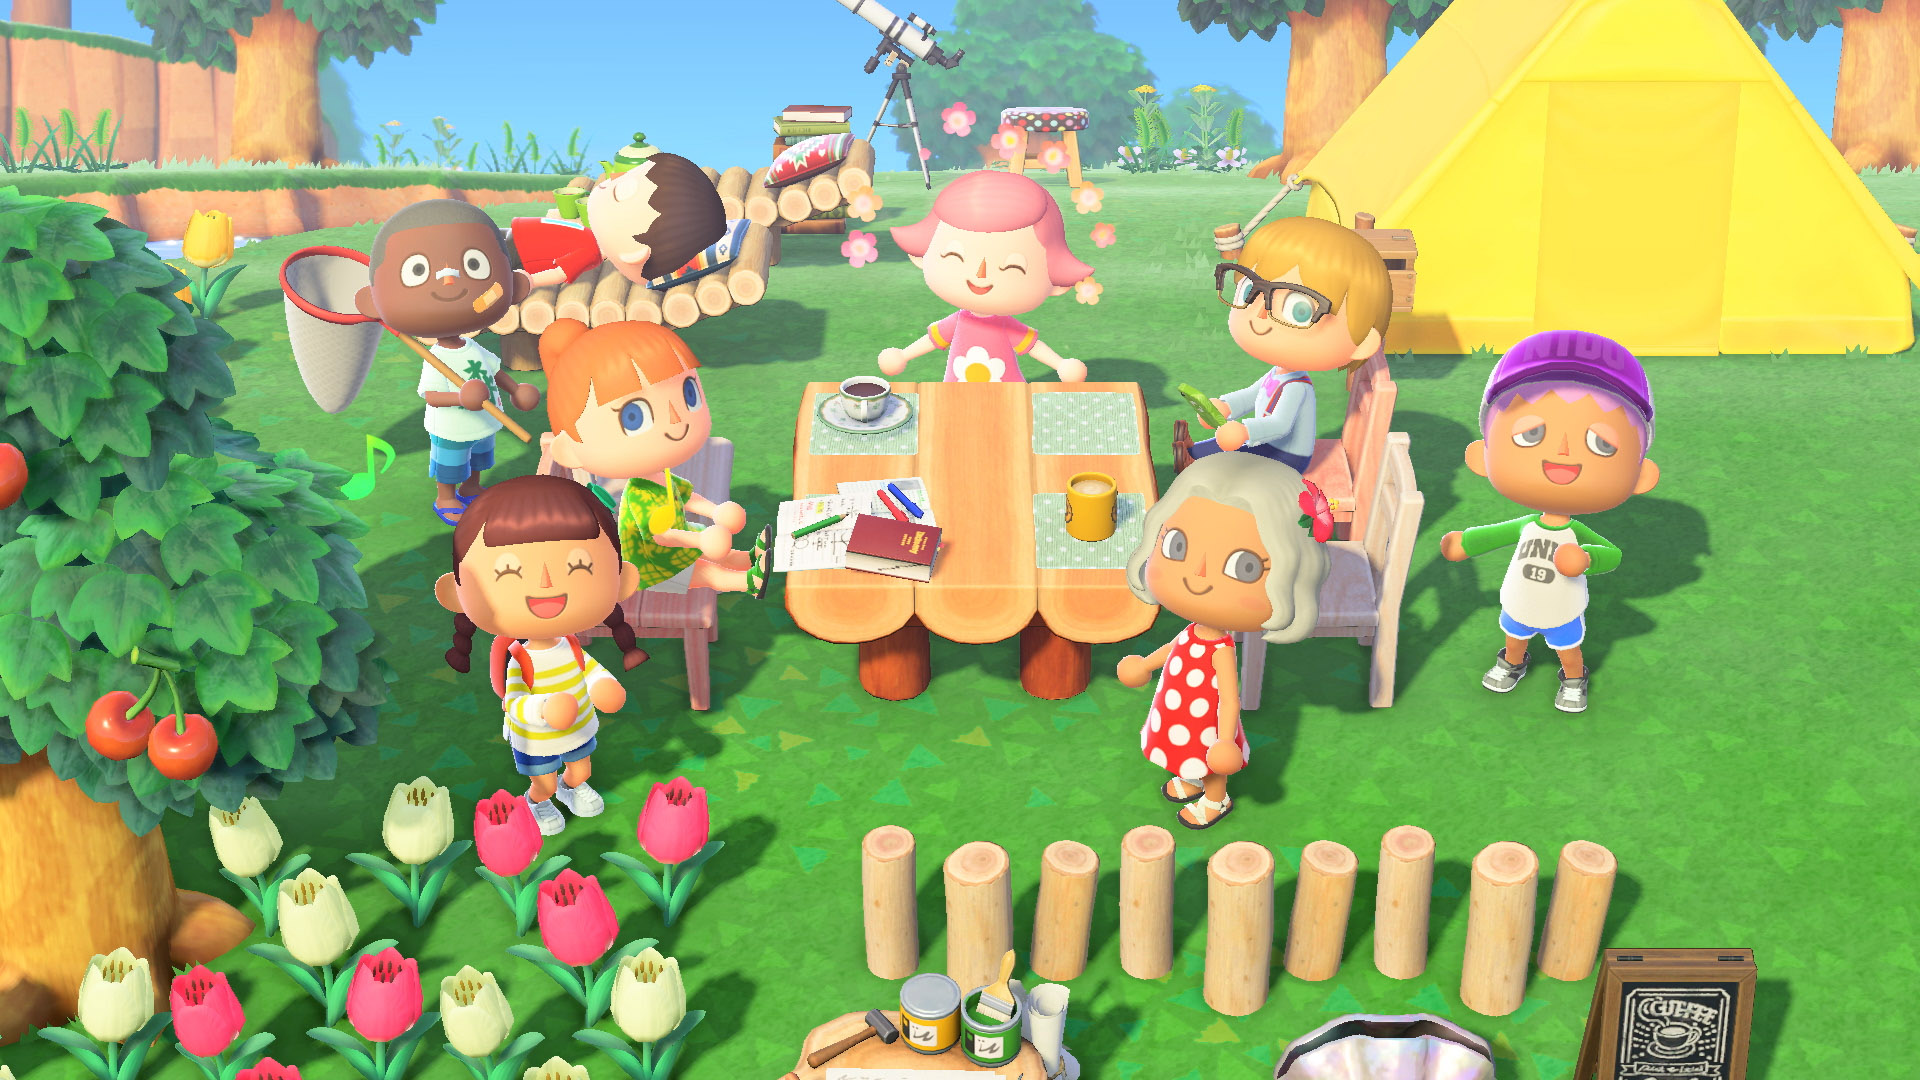 Astounding Animal Crossing Threw Me A Birthday Party That Genuinely Lifted My Funny Birthday Cards Online Necthendildamsfinfo